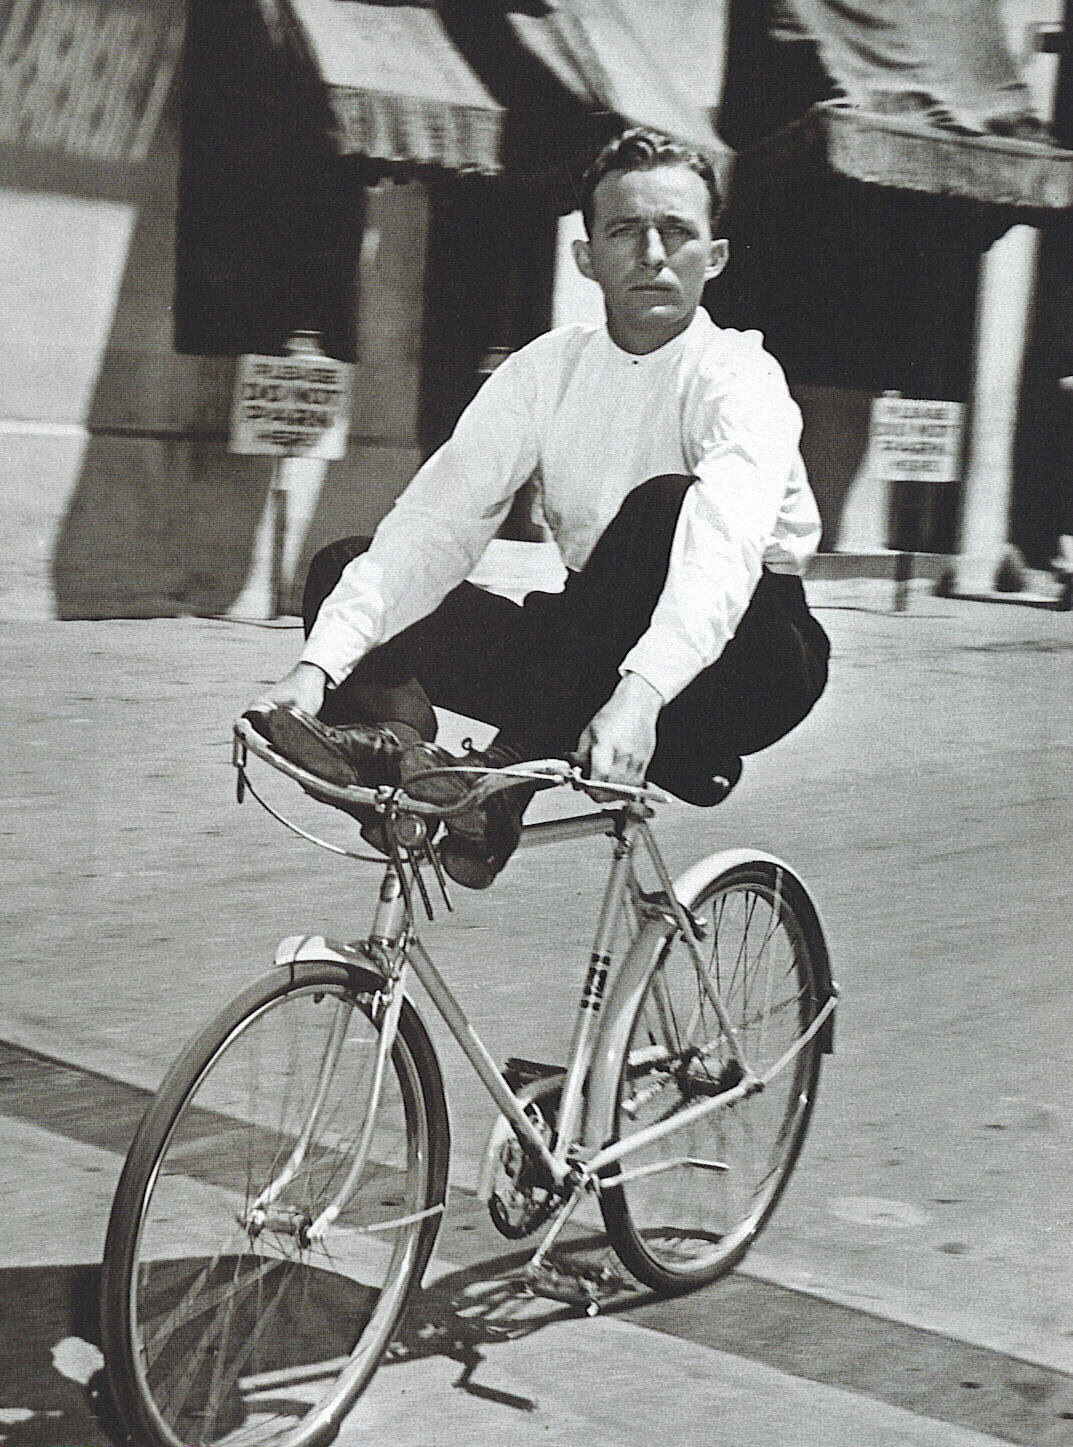 #Cycling in style